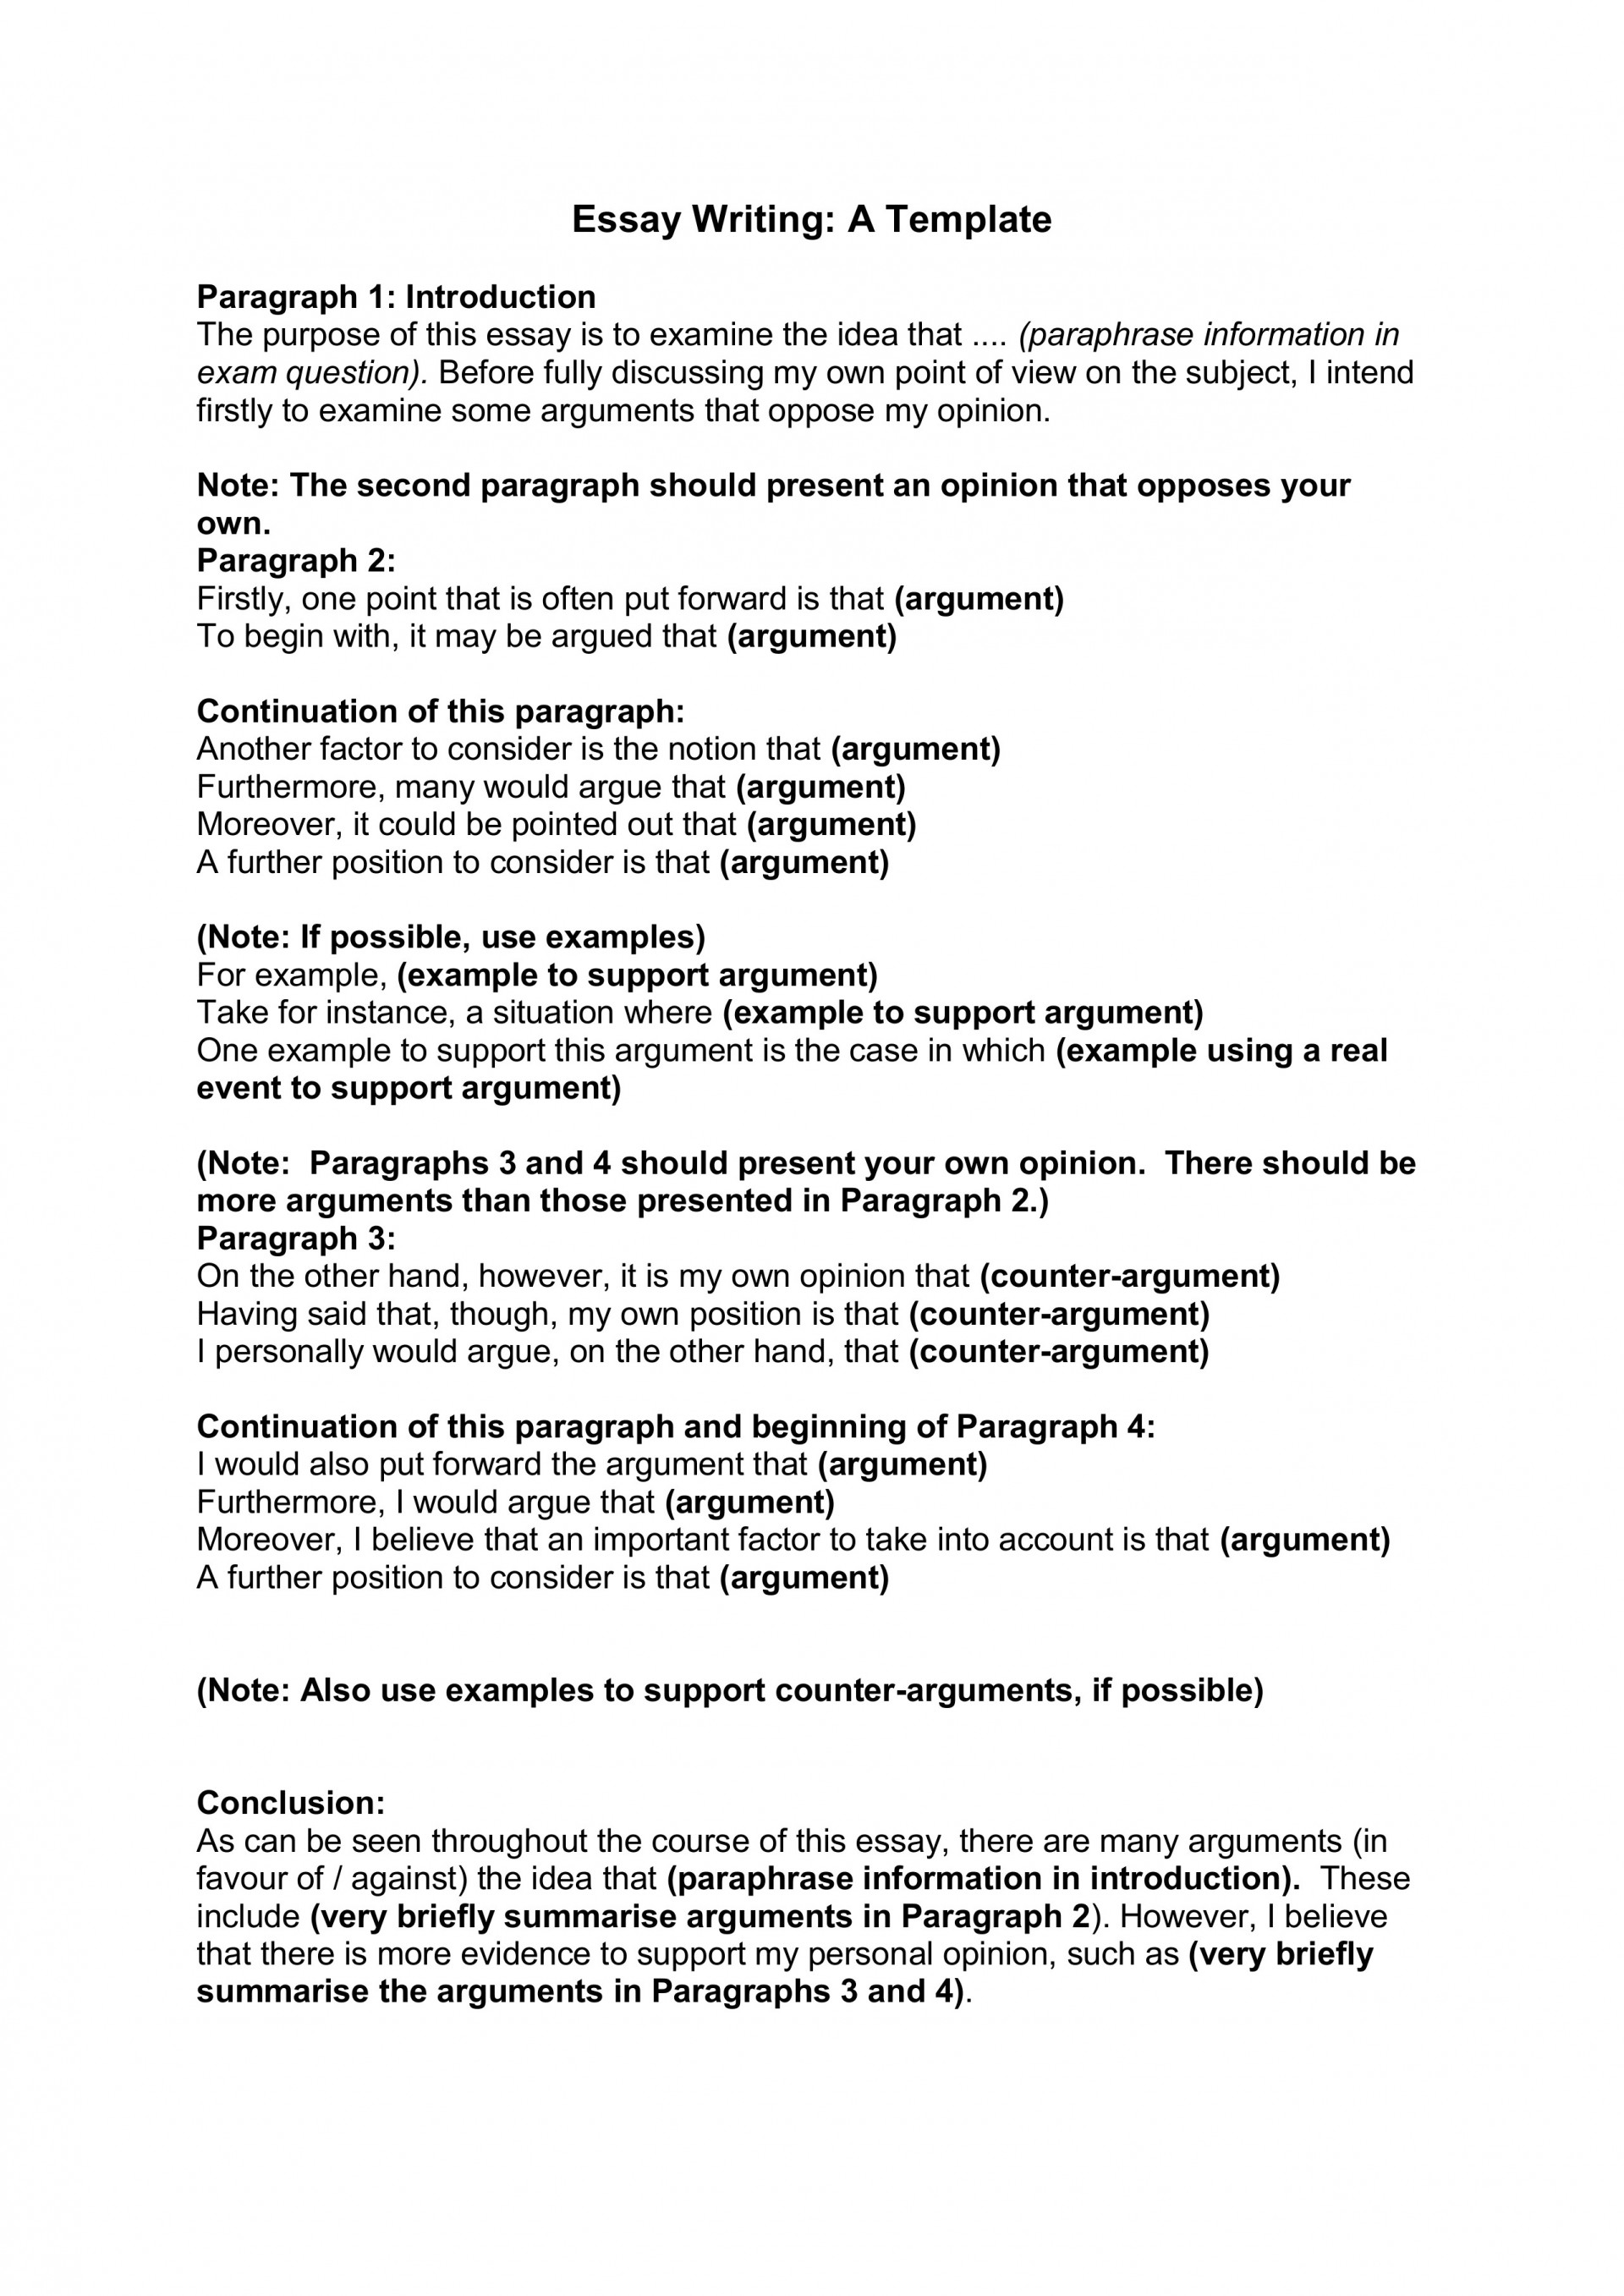 012 Essay Writing Template For Part 2cbu003d Research Paper Order Striking Papers 1920